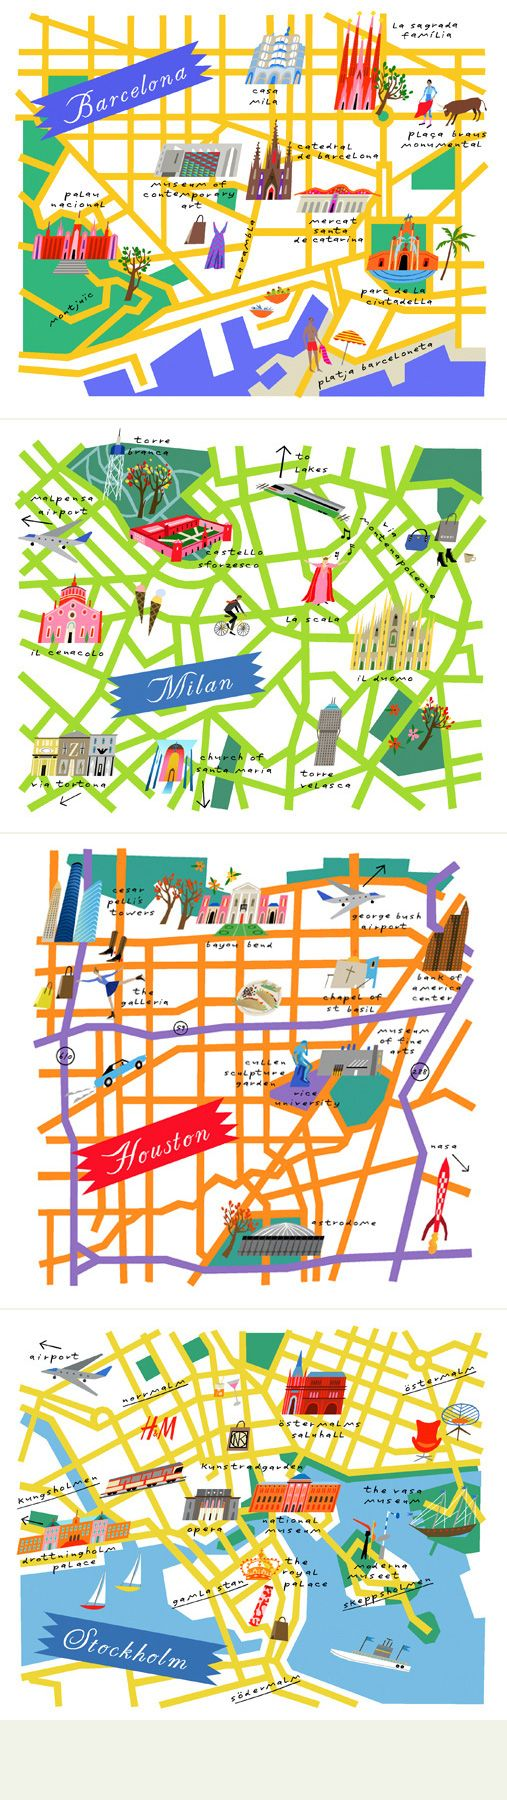 """More Lena Corwin maps from her 2011 book """"Maps."""""""